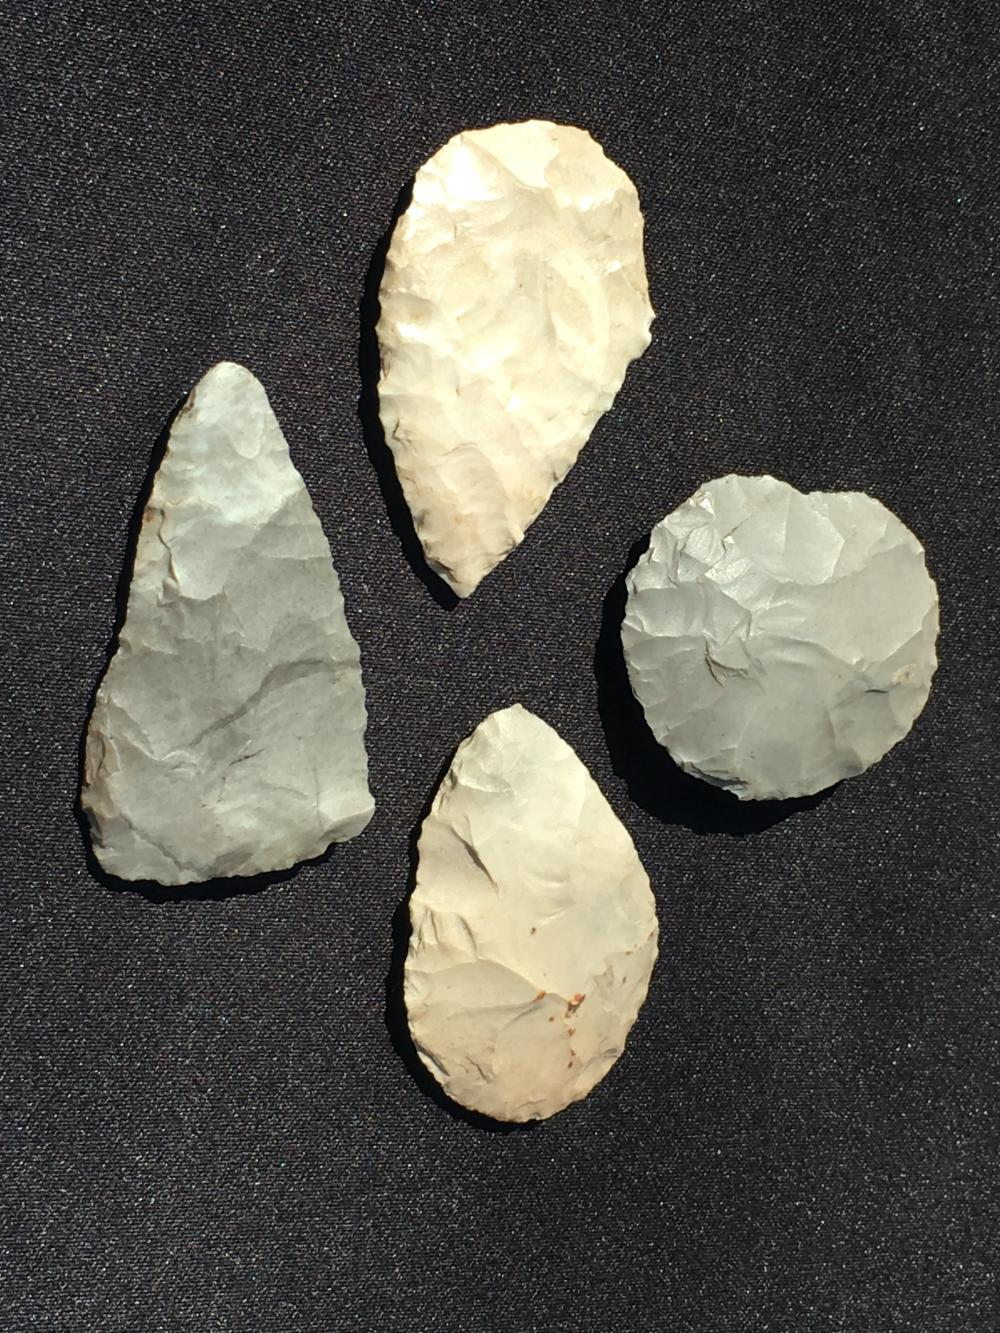 Lot 163: Artifact, Rock, Tool, Natural, Collectible, Arrowhead, Knife